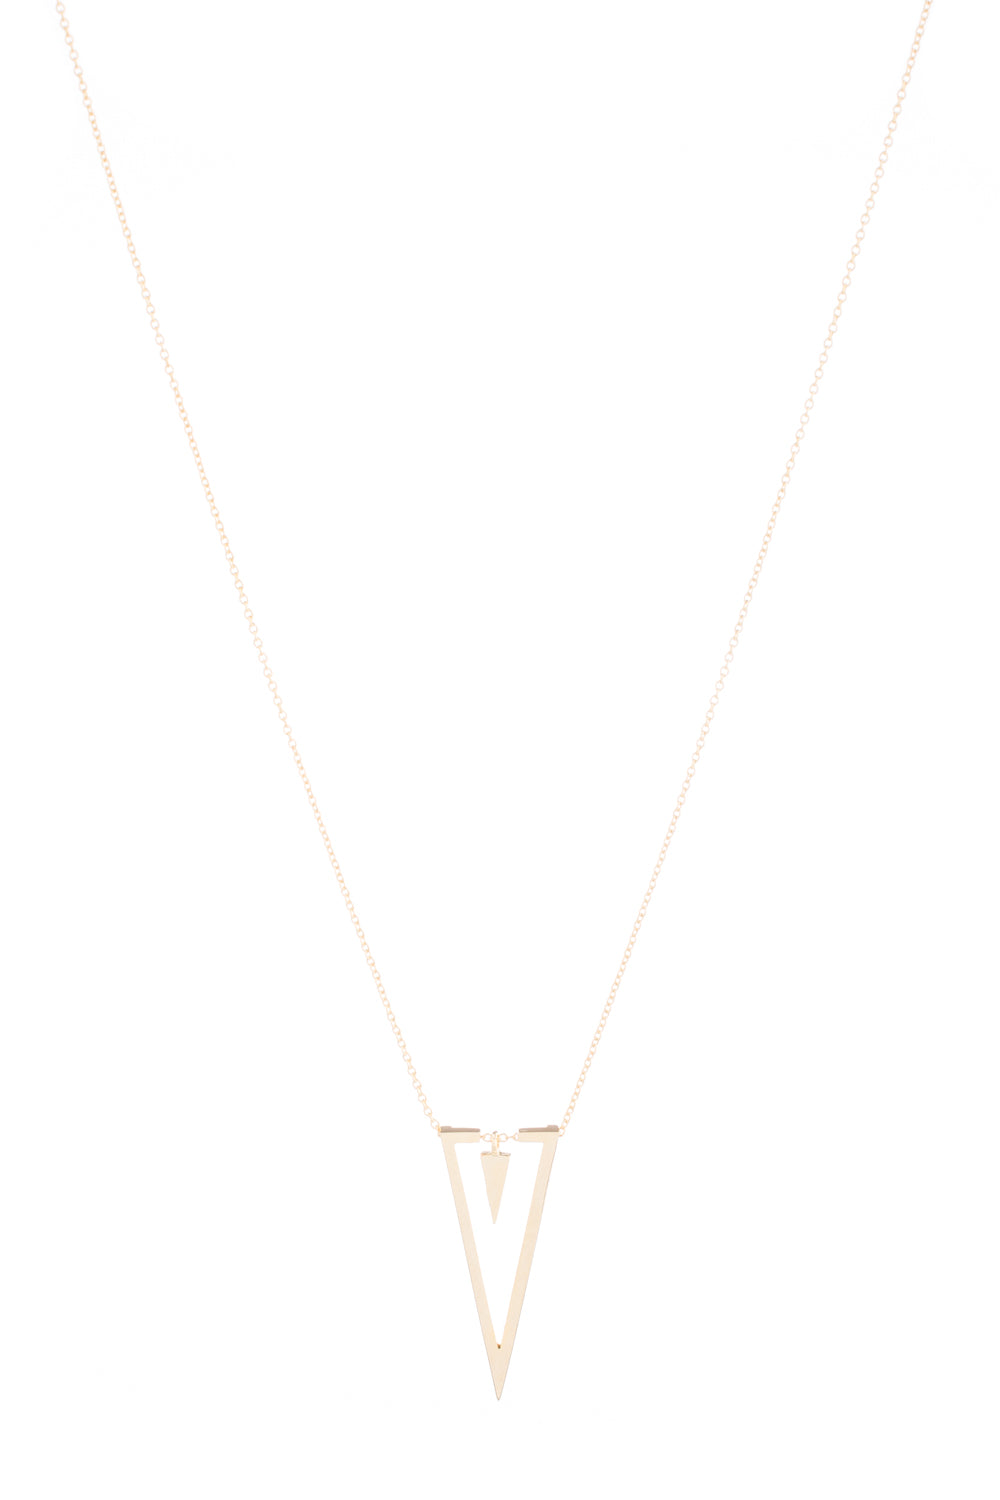 Type 3 Arrow of Courage Necklace